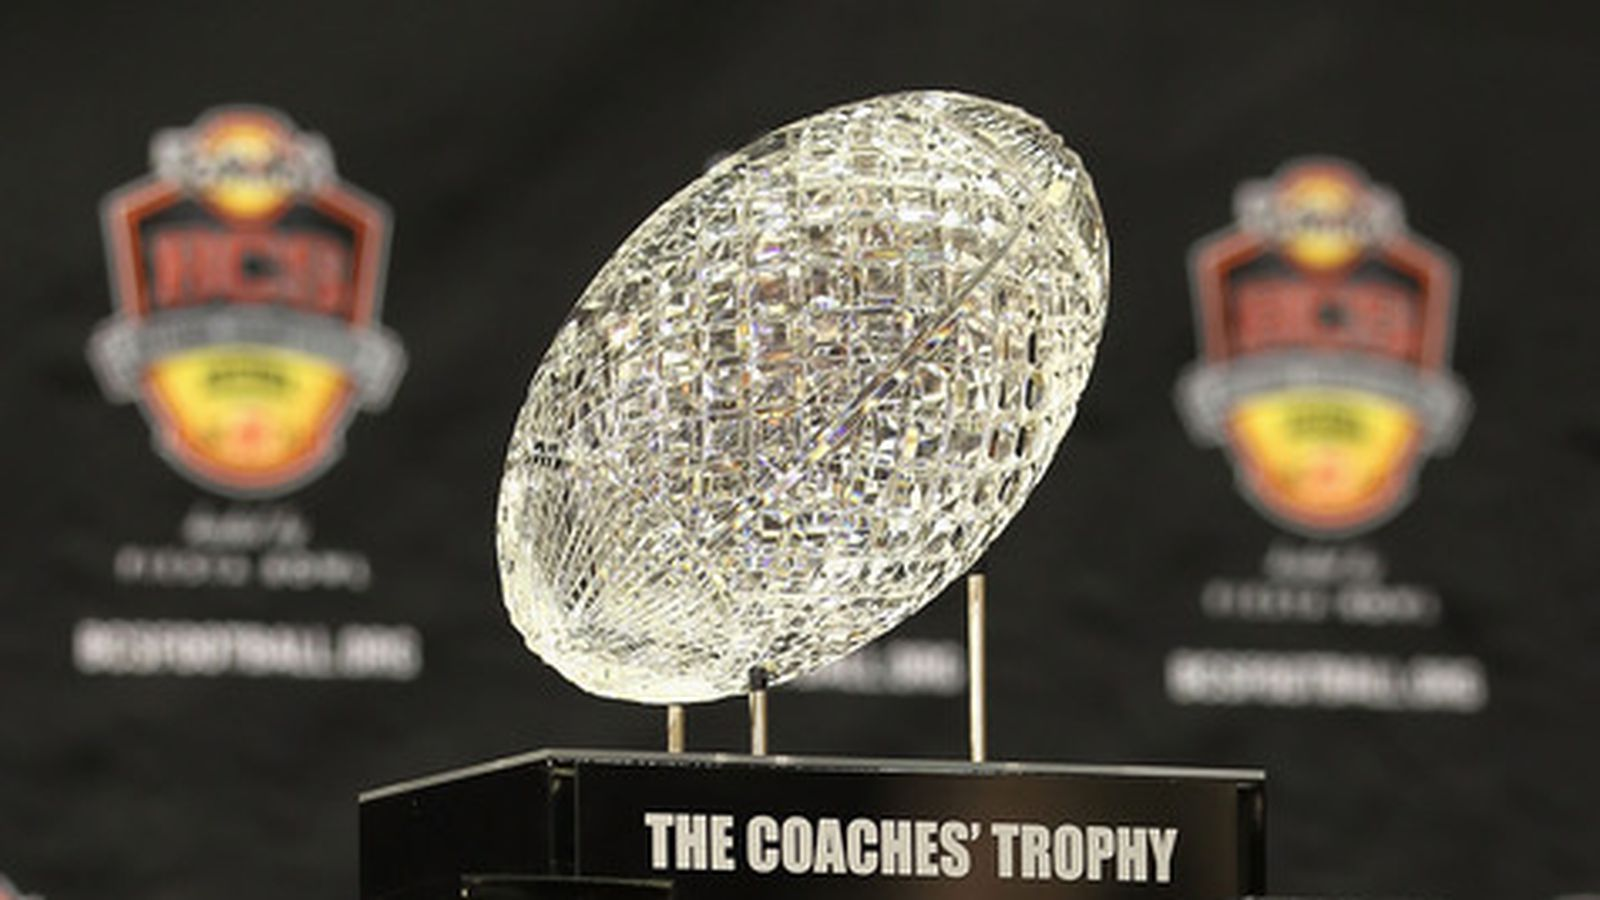 bcs projected standings College football polls and rankings at cbssportscom include the ap top 25 college football poll, coaches poll, bcs rankings and cbssportscom's own college football poll.